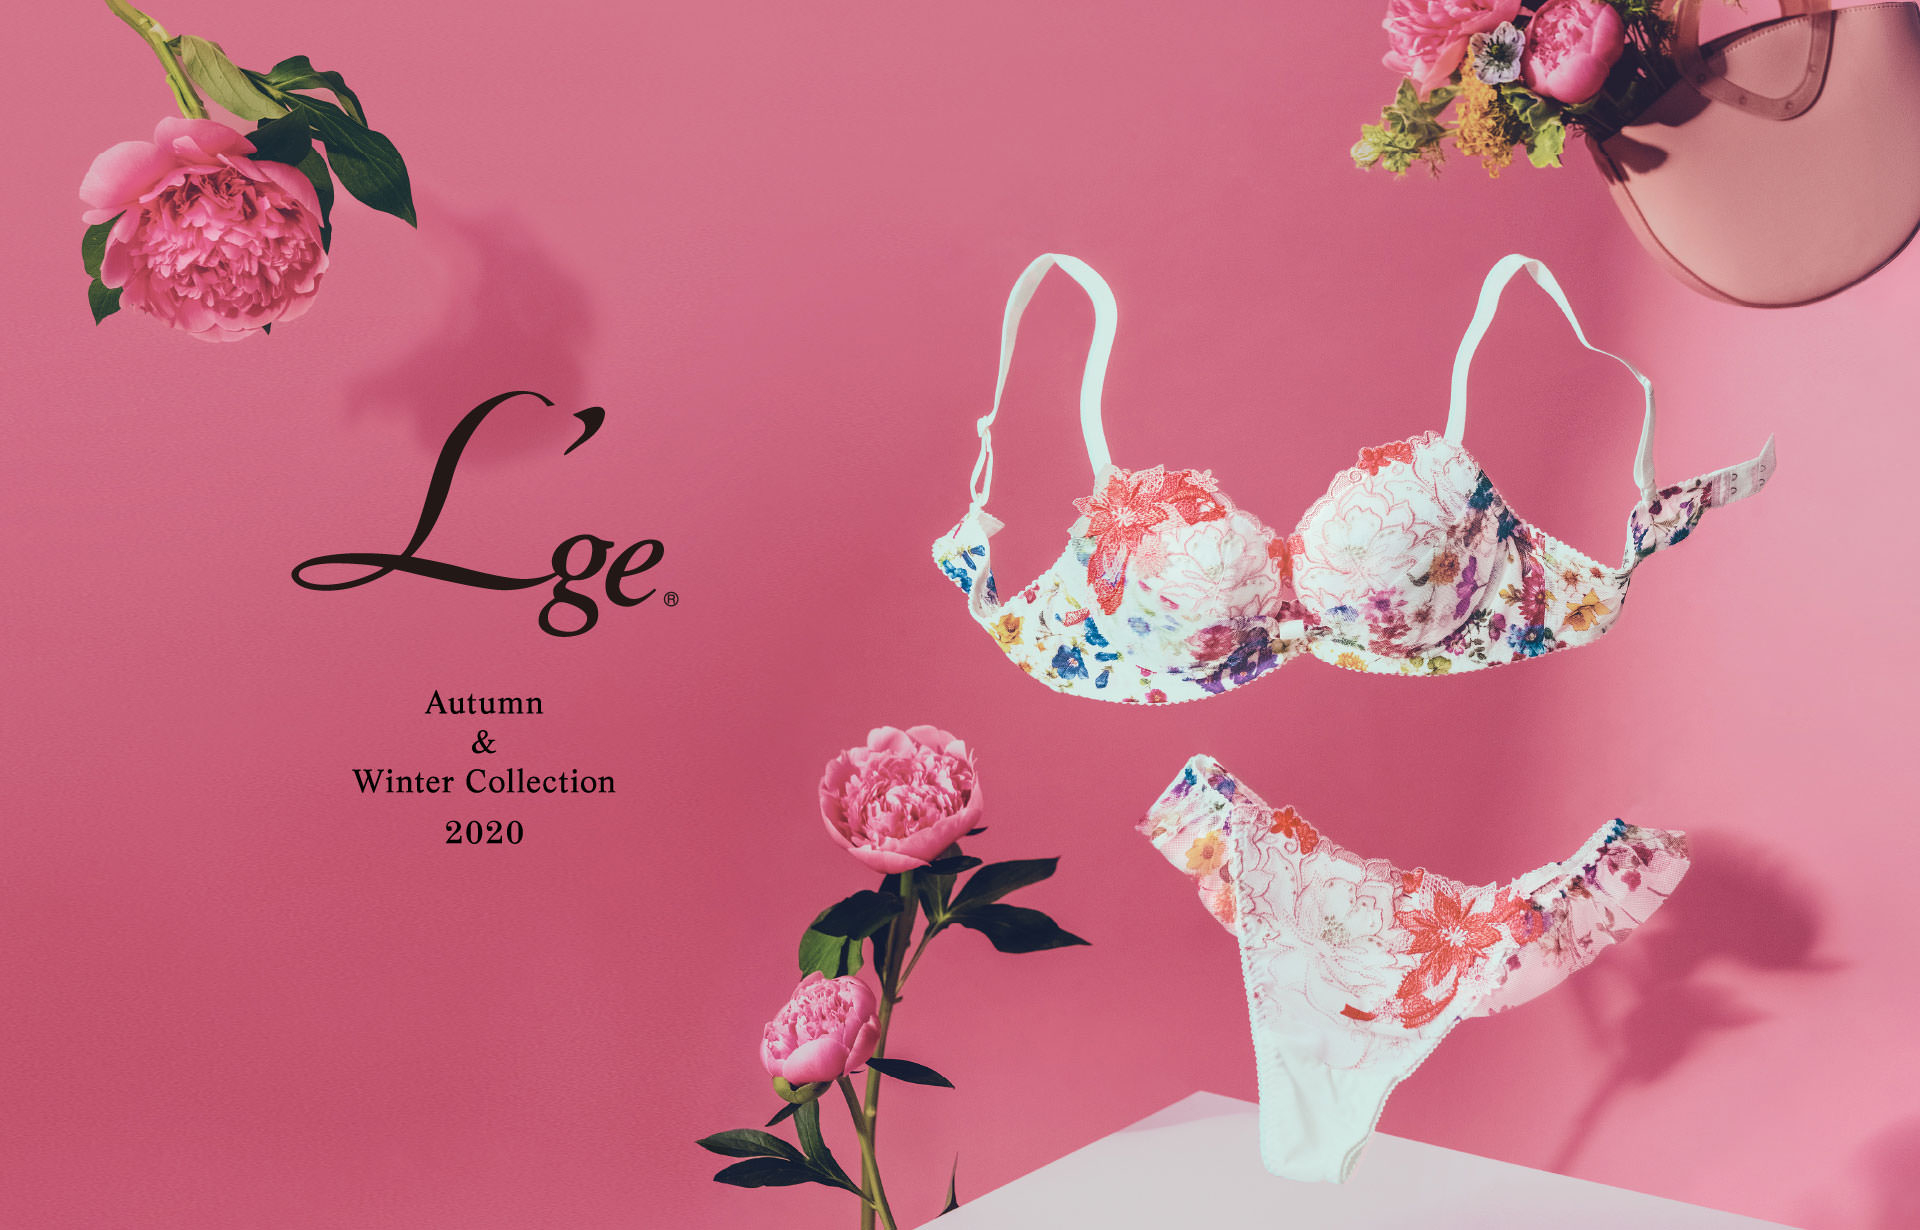 Wacoal L'ge 2020AW Collection01